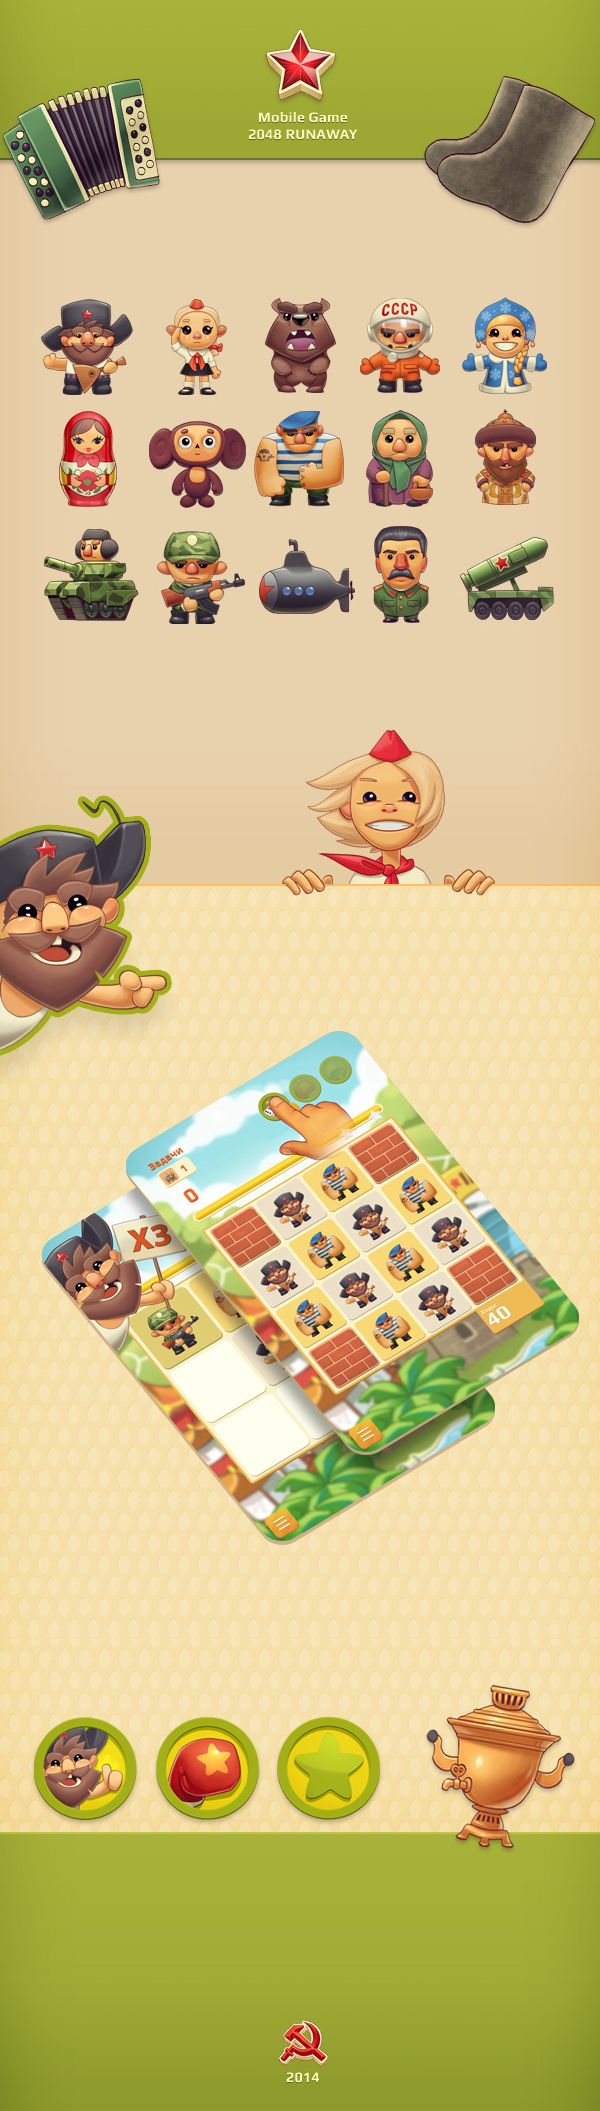 Mobile game on Behance